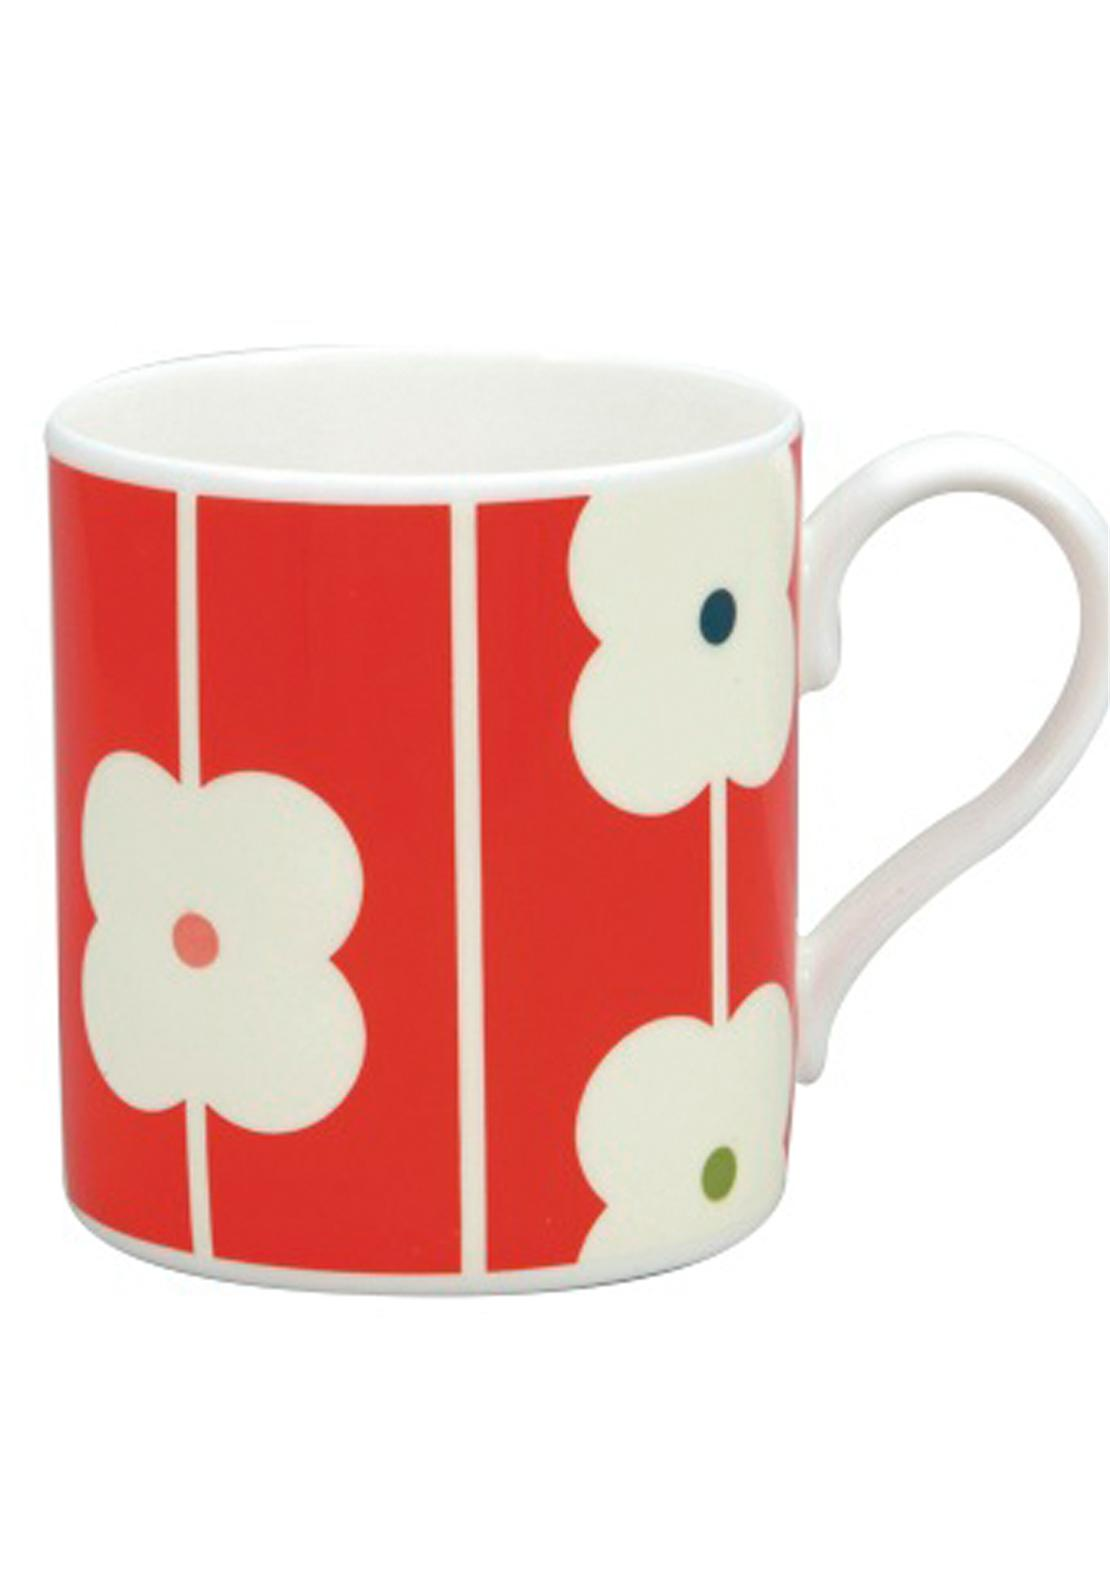 Orla Kiely Flower Abacus Mug, Red